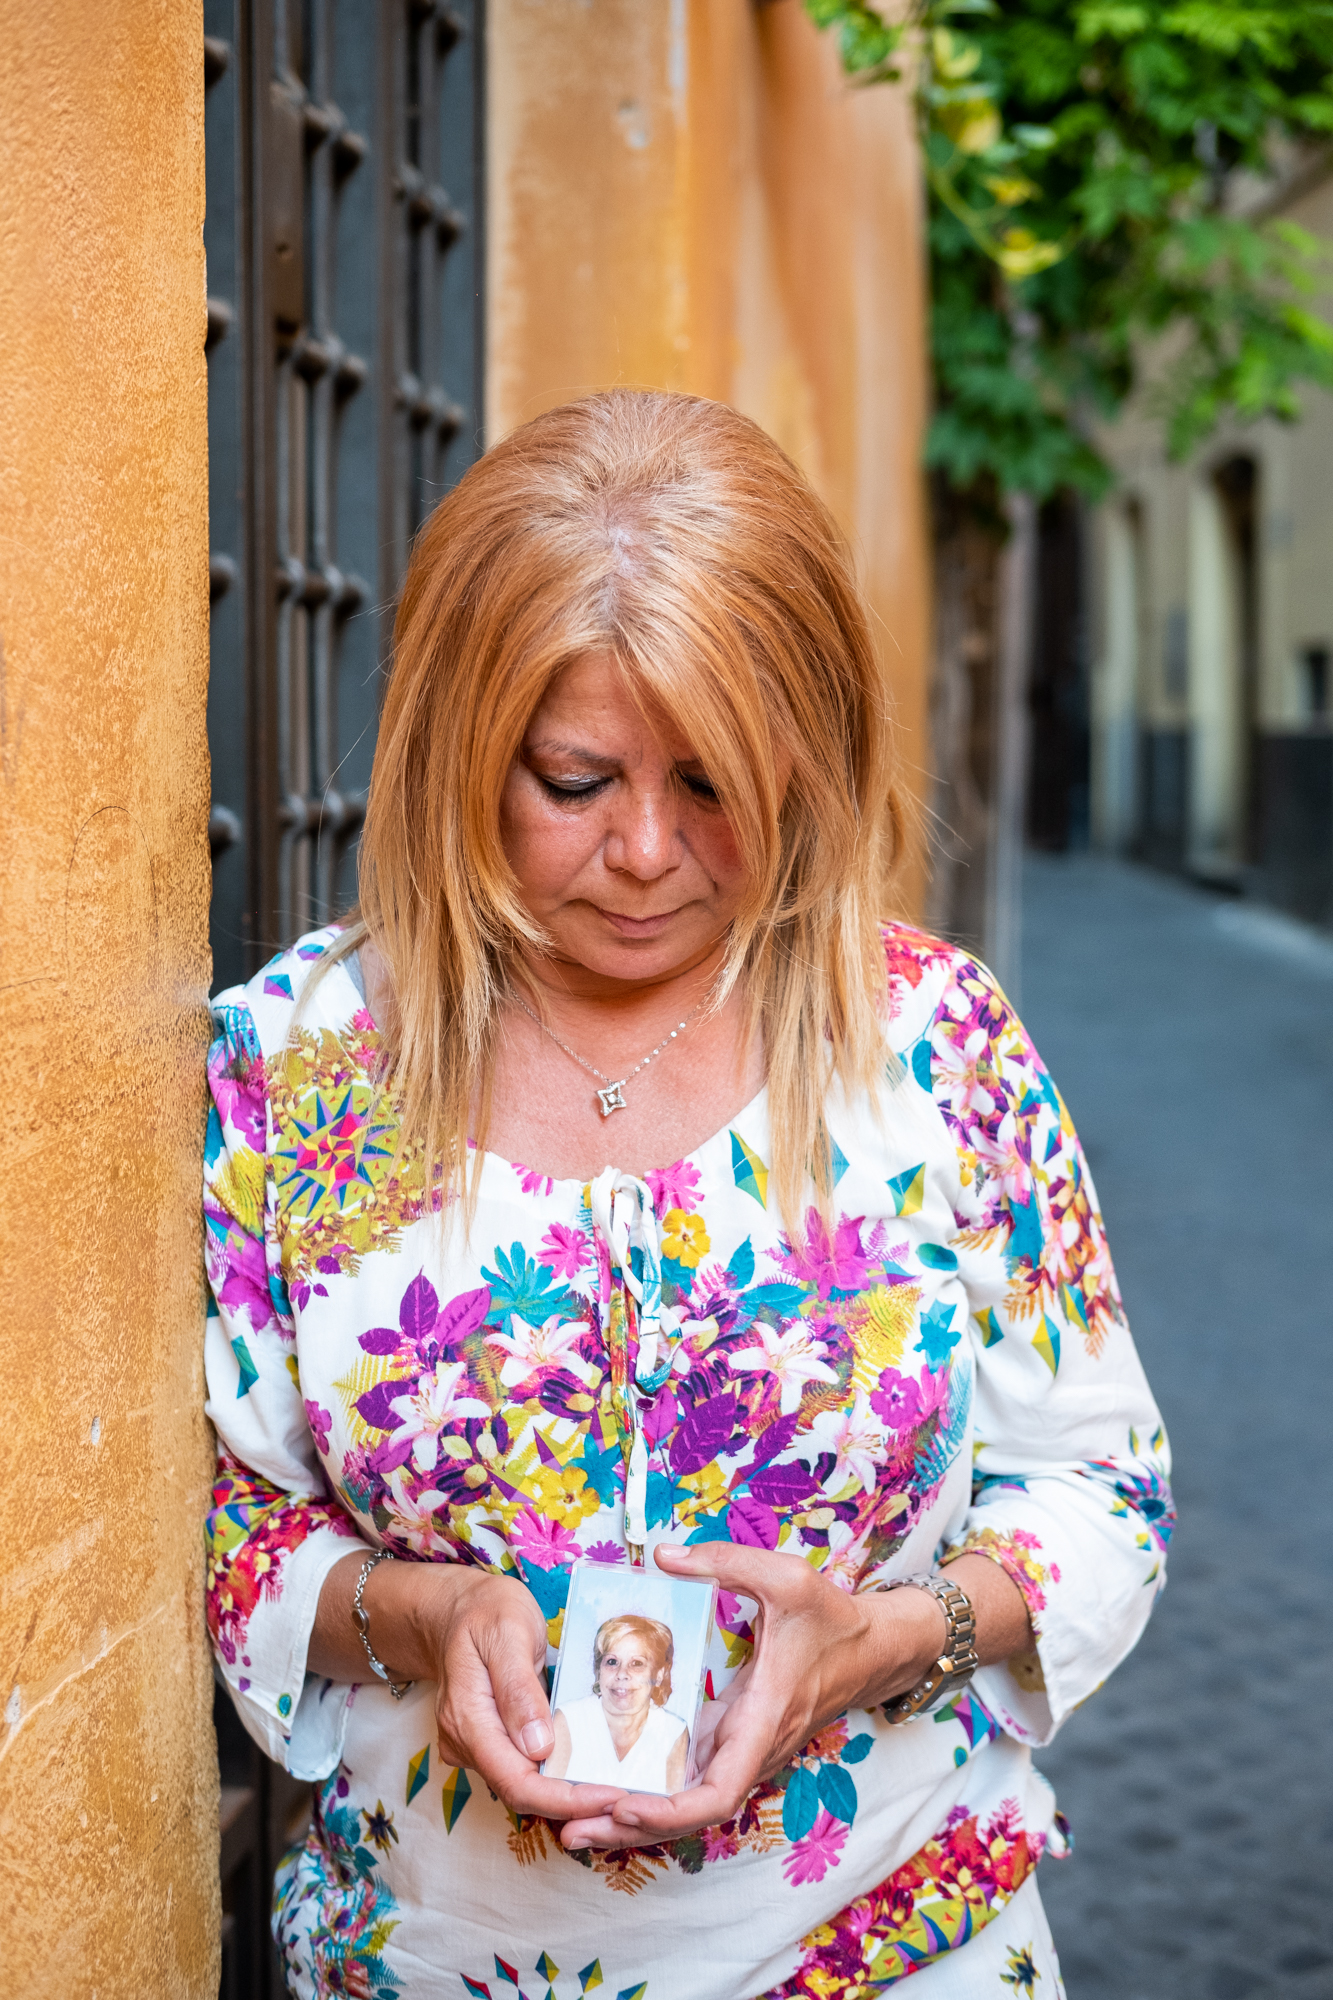 Patrizia Pilloni poses for a portrait along a small street near Campo de'Fiori in Rome, Italy. Patrizia holds a picture of her mother, who was a huge influence on Patrizia to follow her dreams.